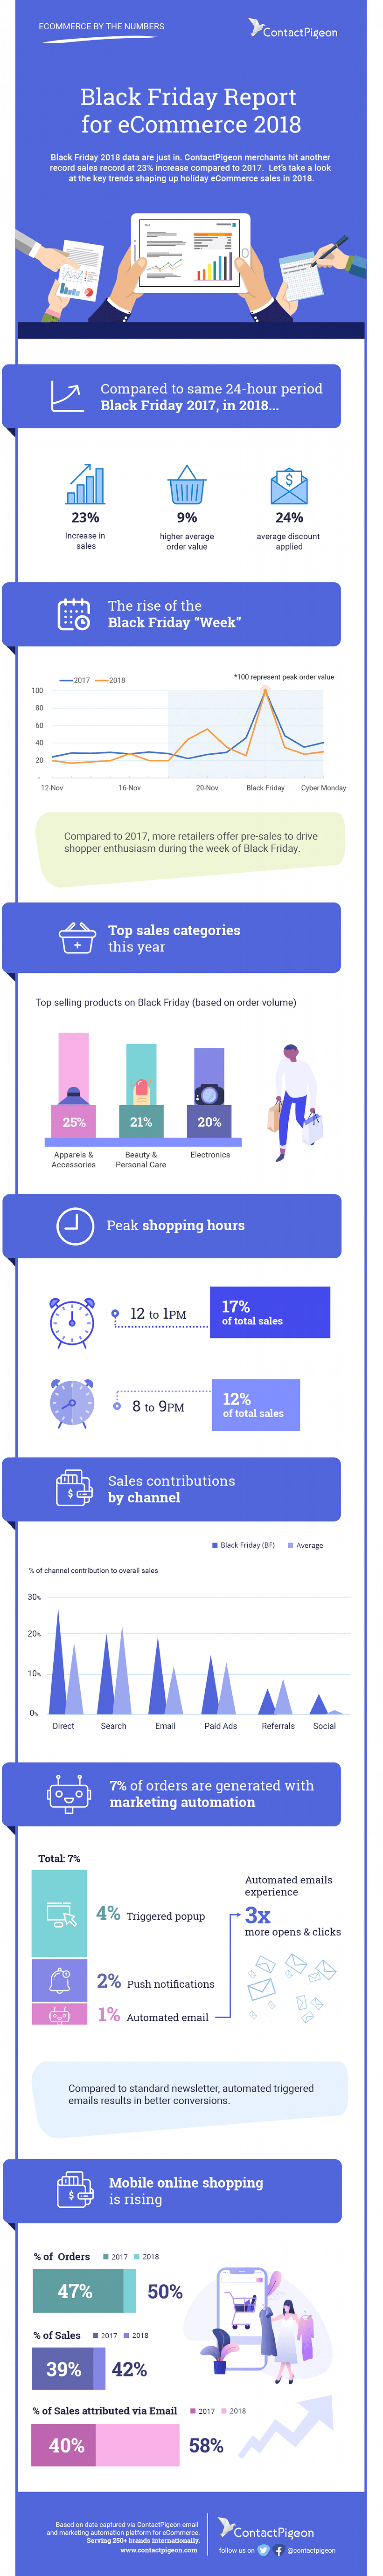 Black Friday 2018 eCommerce Infographic Infographic